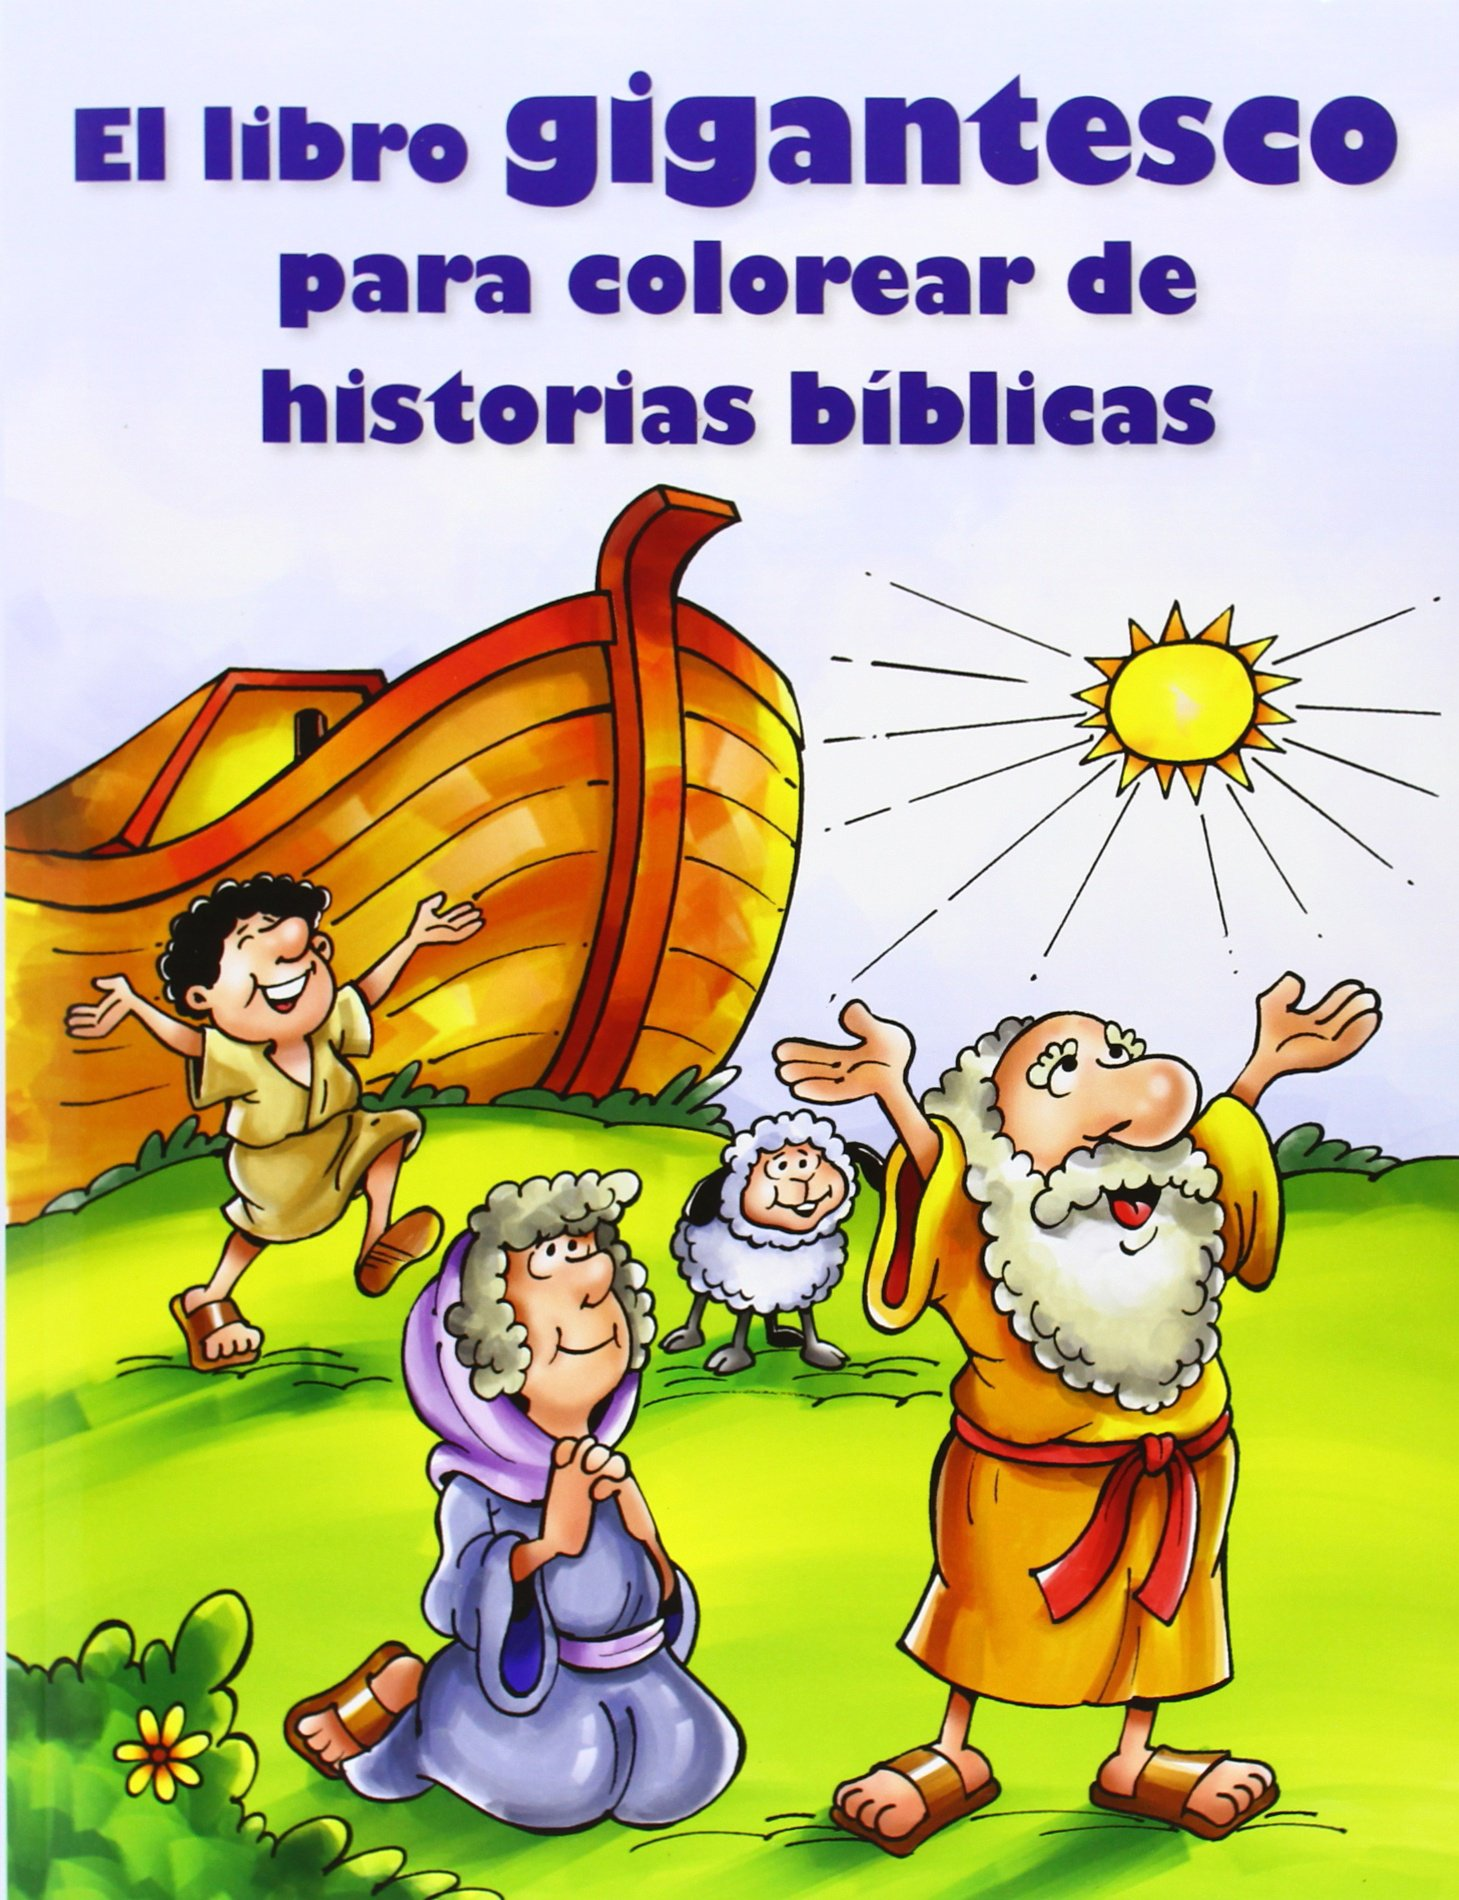 El Libro Gigantesco Para Colorear de Historias Biblicas: Amazon.es ...